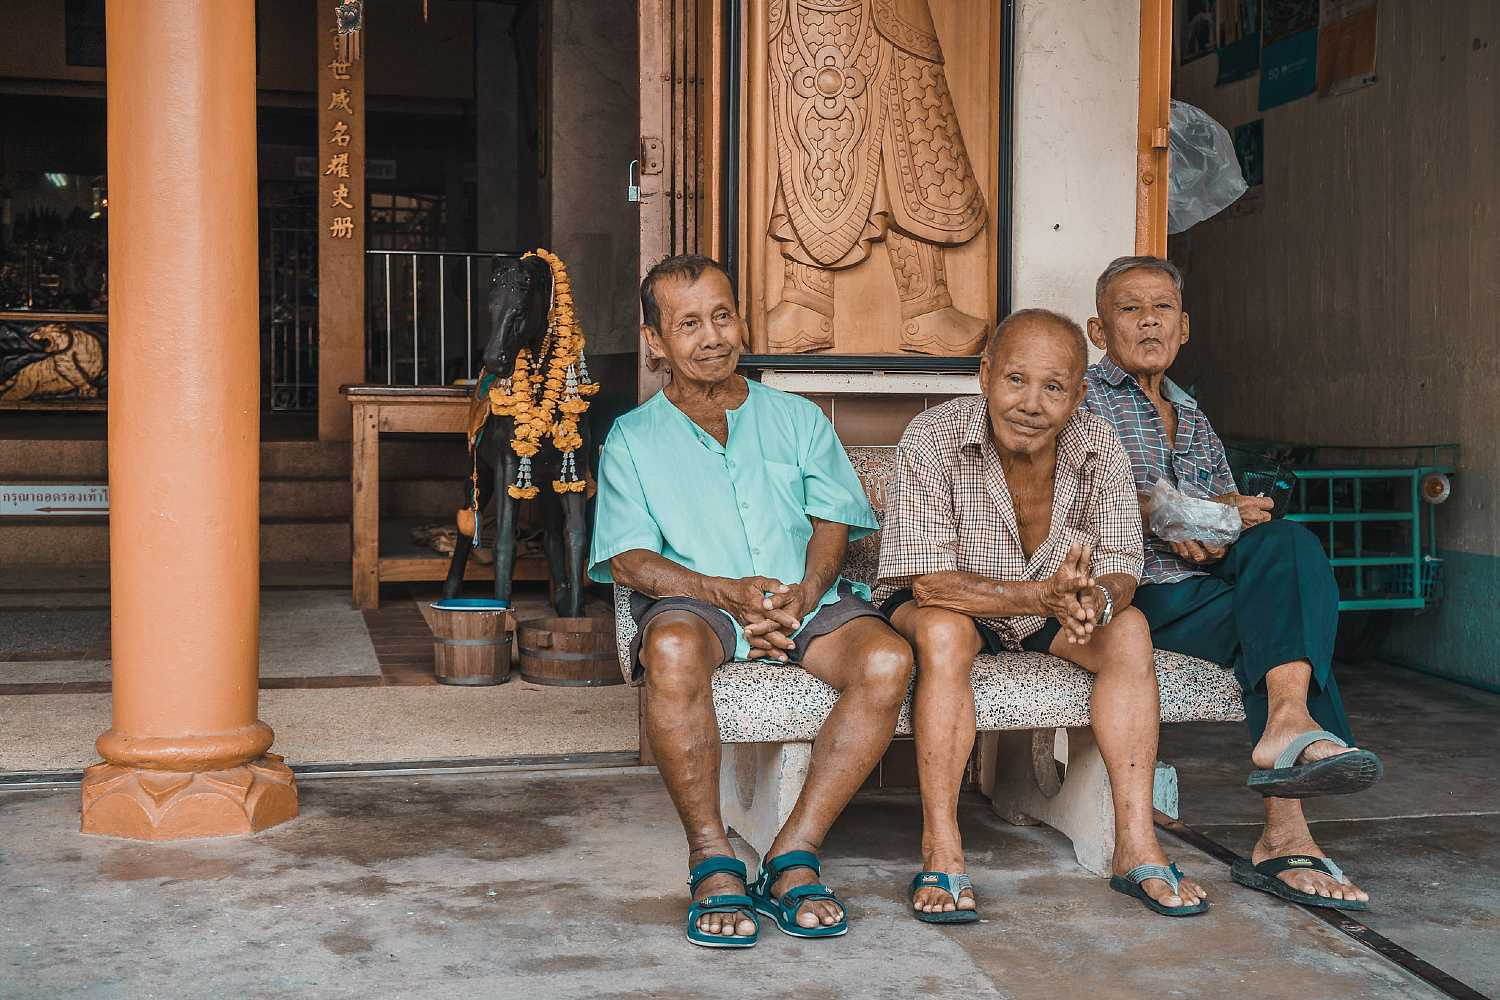 Old Town Takua Pa Khao Lak, 3 old men in a row